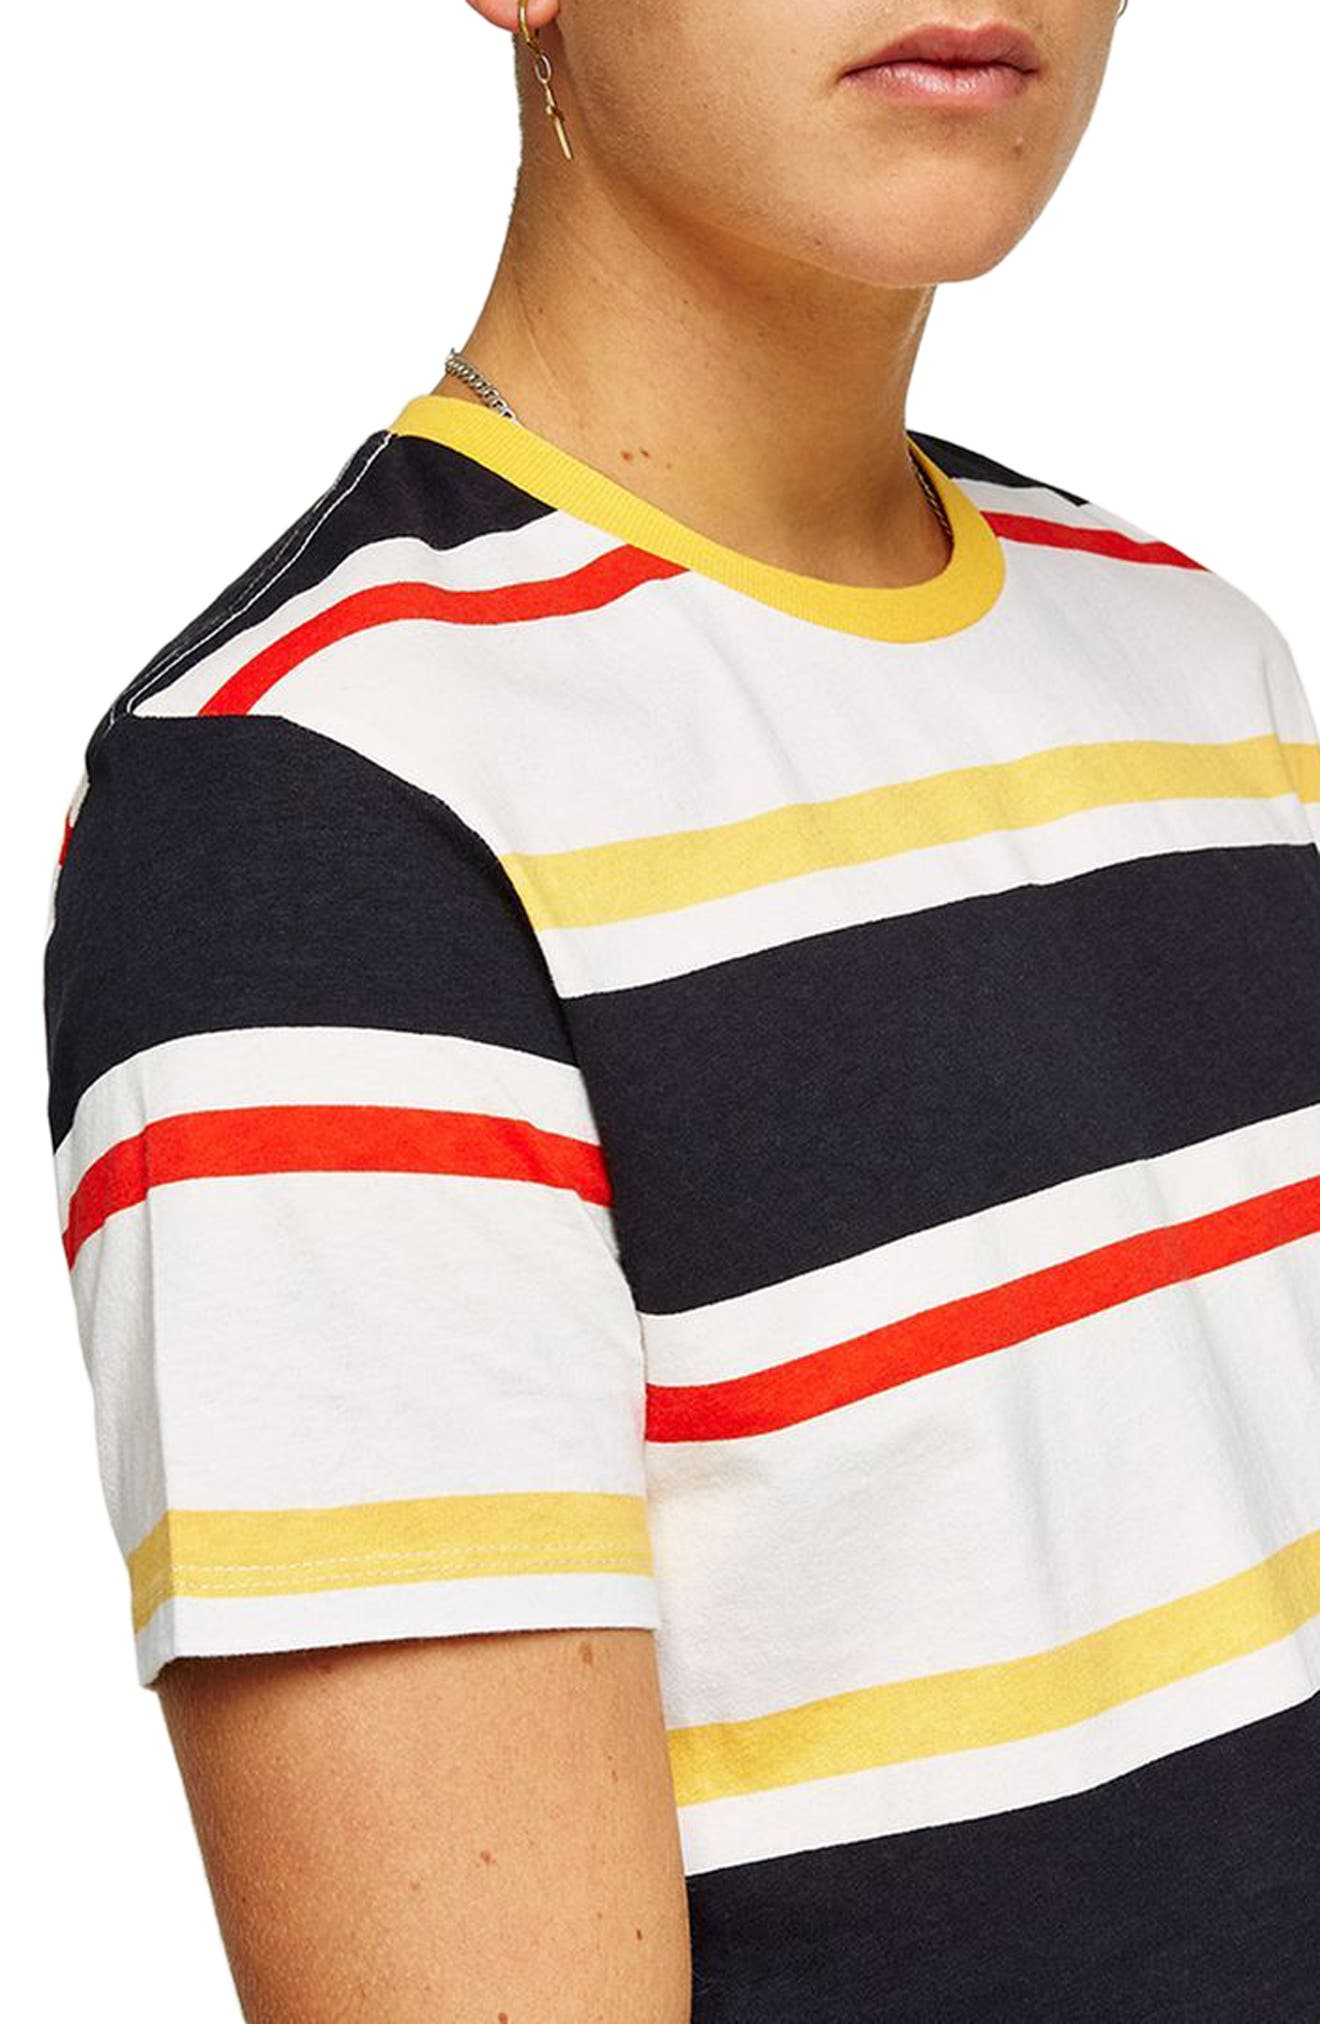 Slim Fit Stripe T-Shirt,                             Alternate thumbnail 3, color,                             700